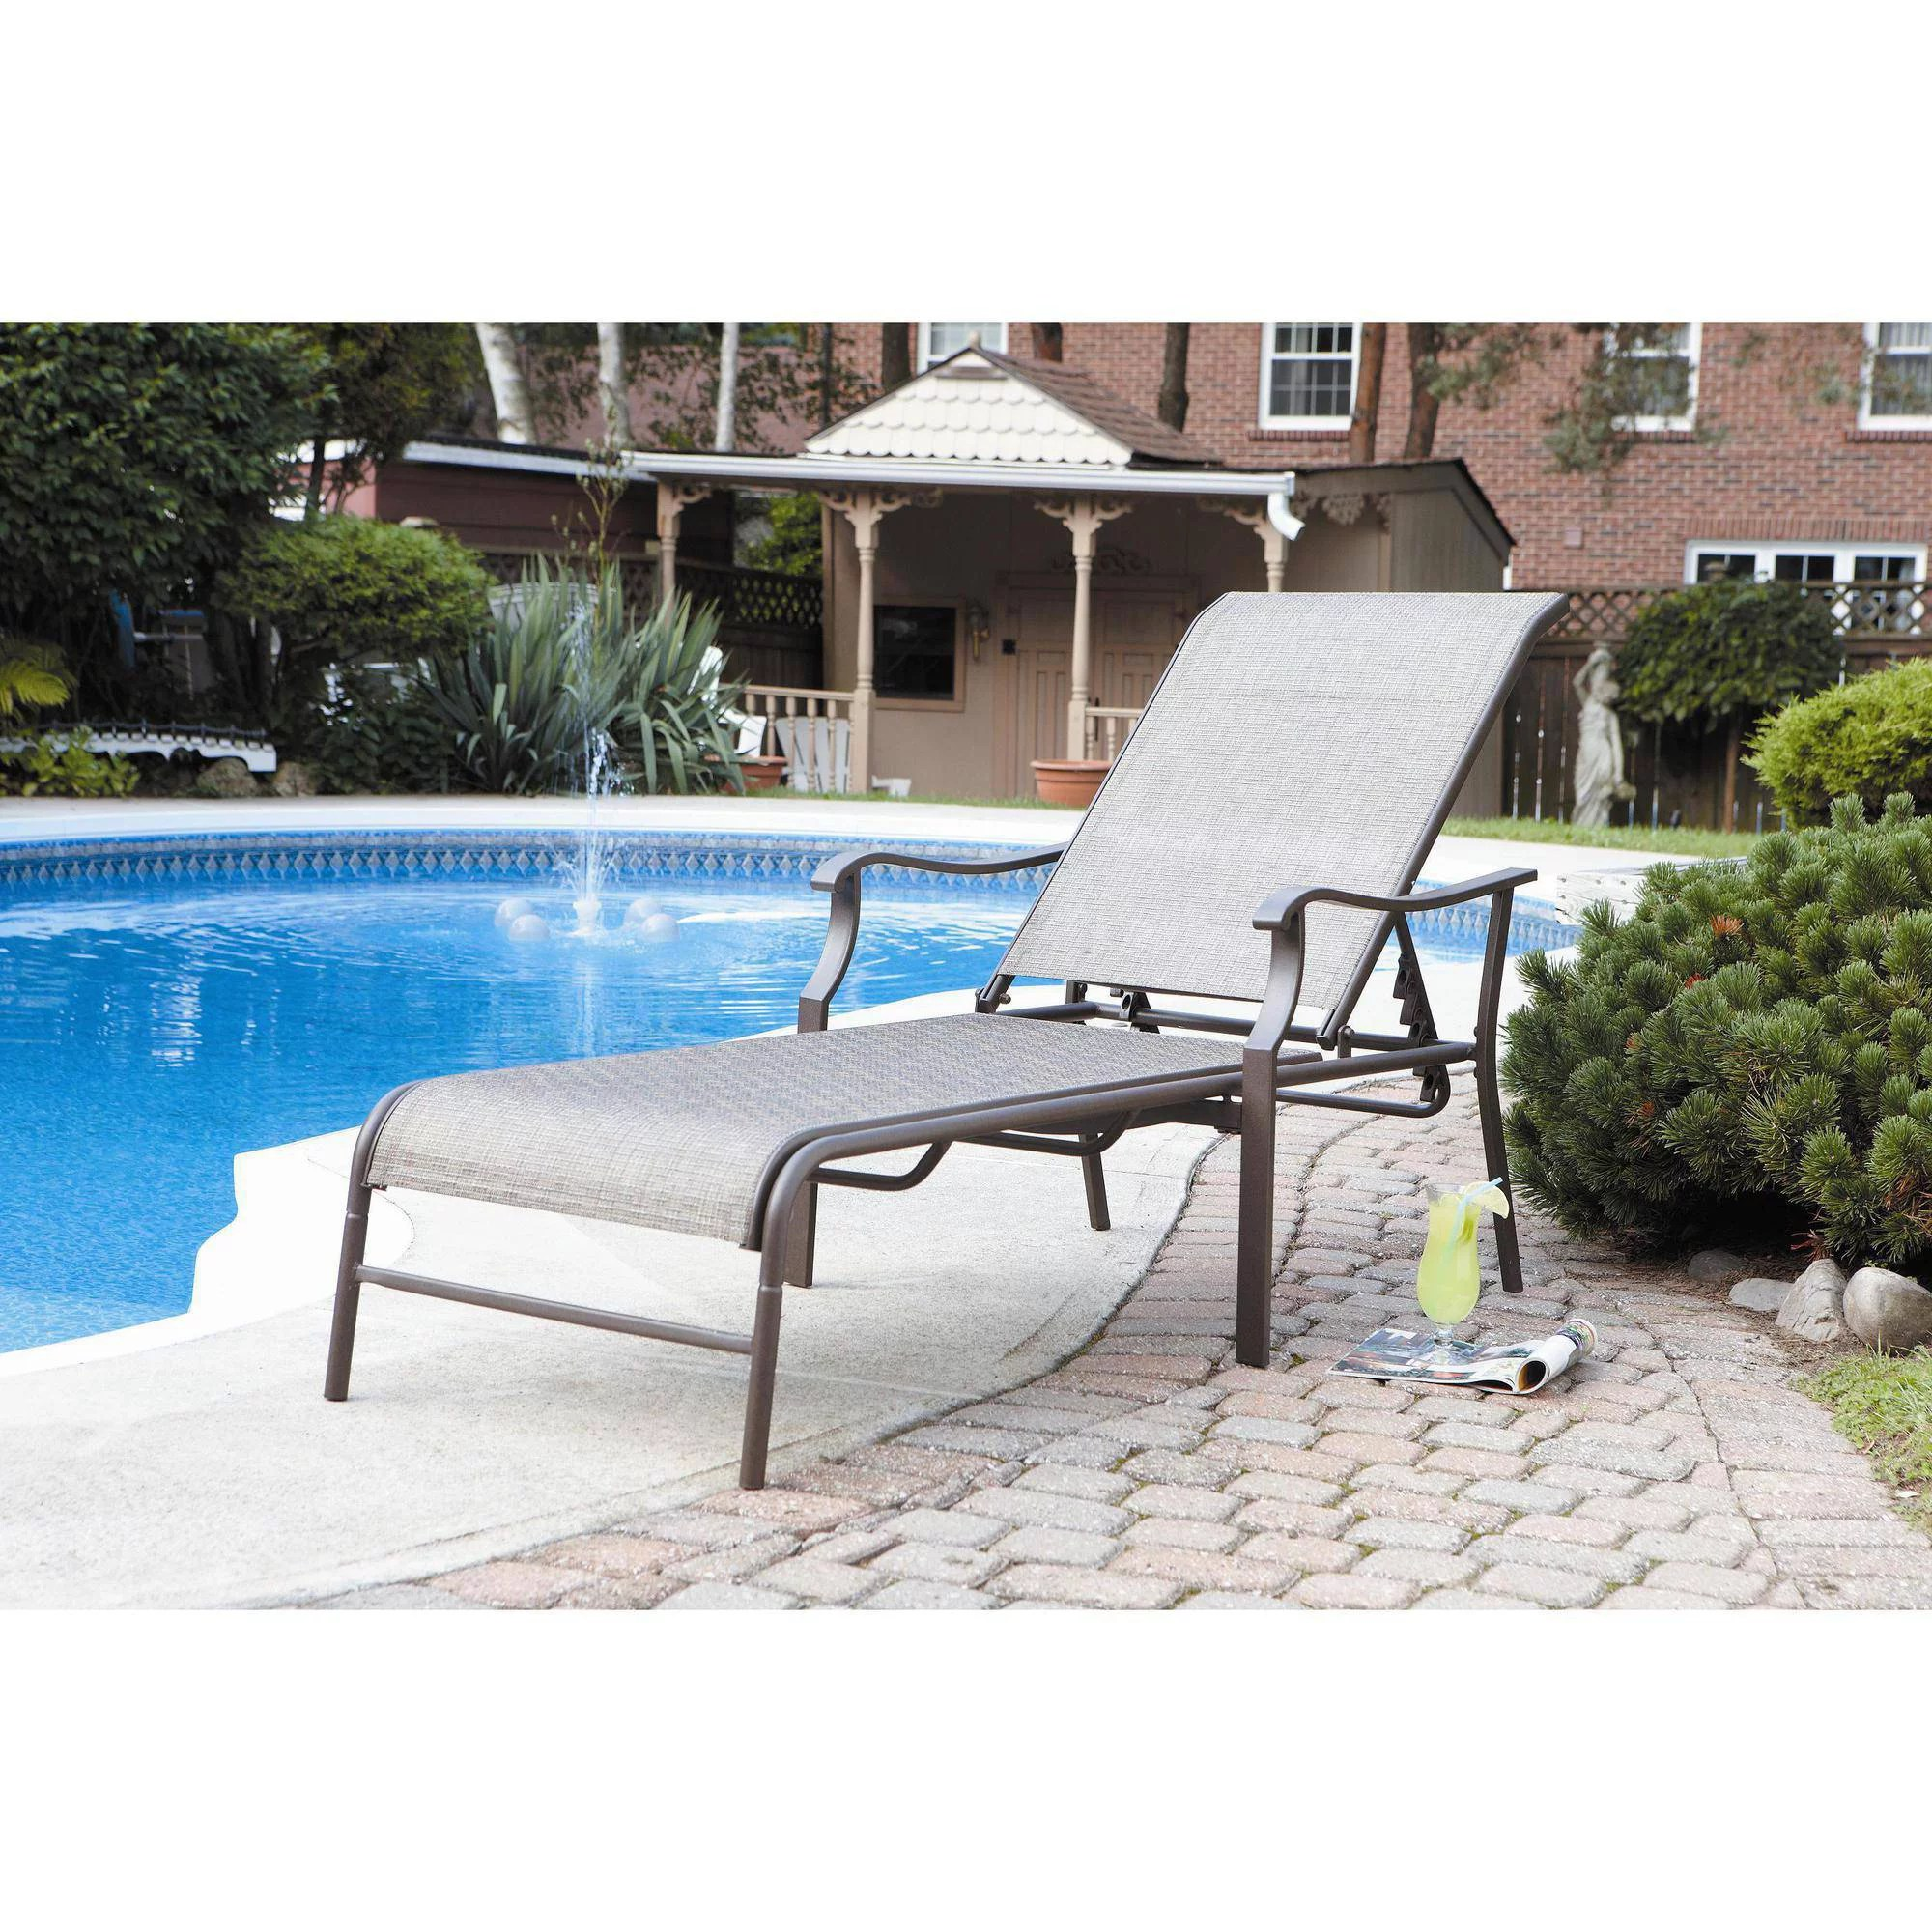 Pool Chaise Lounge Chairs Outsunny Outdoor Patio Synthetic Rattan Wicker 3 Pc Chaise Lounge Chair Set W Side Table